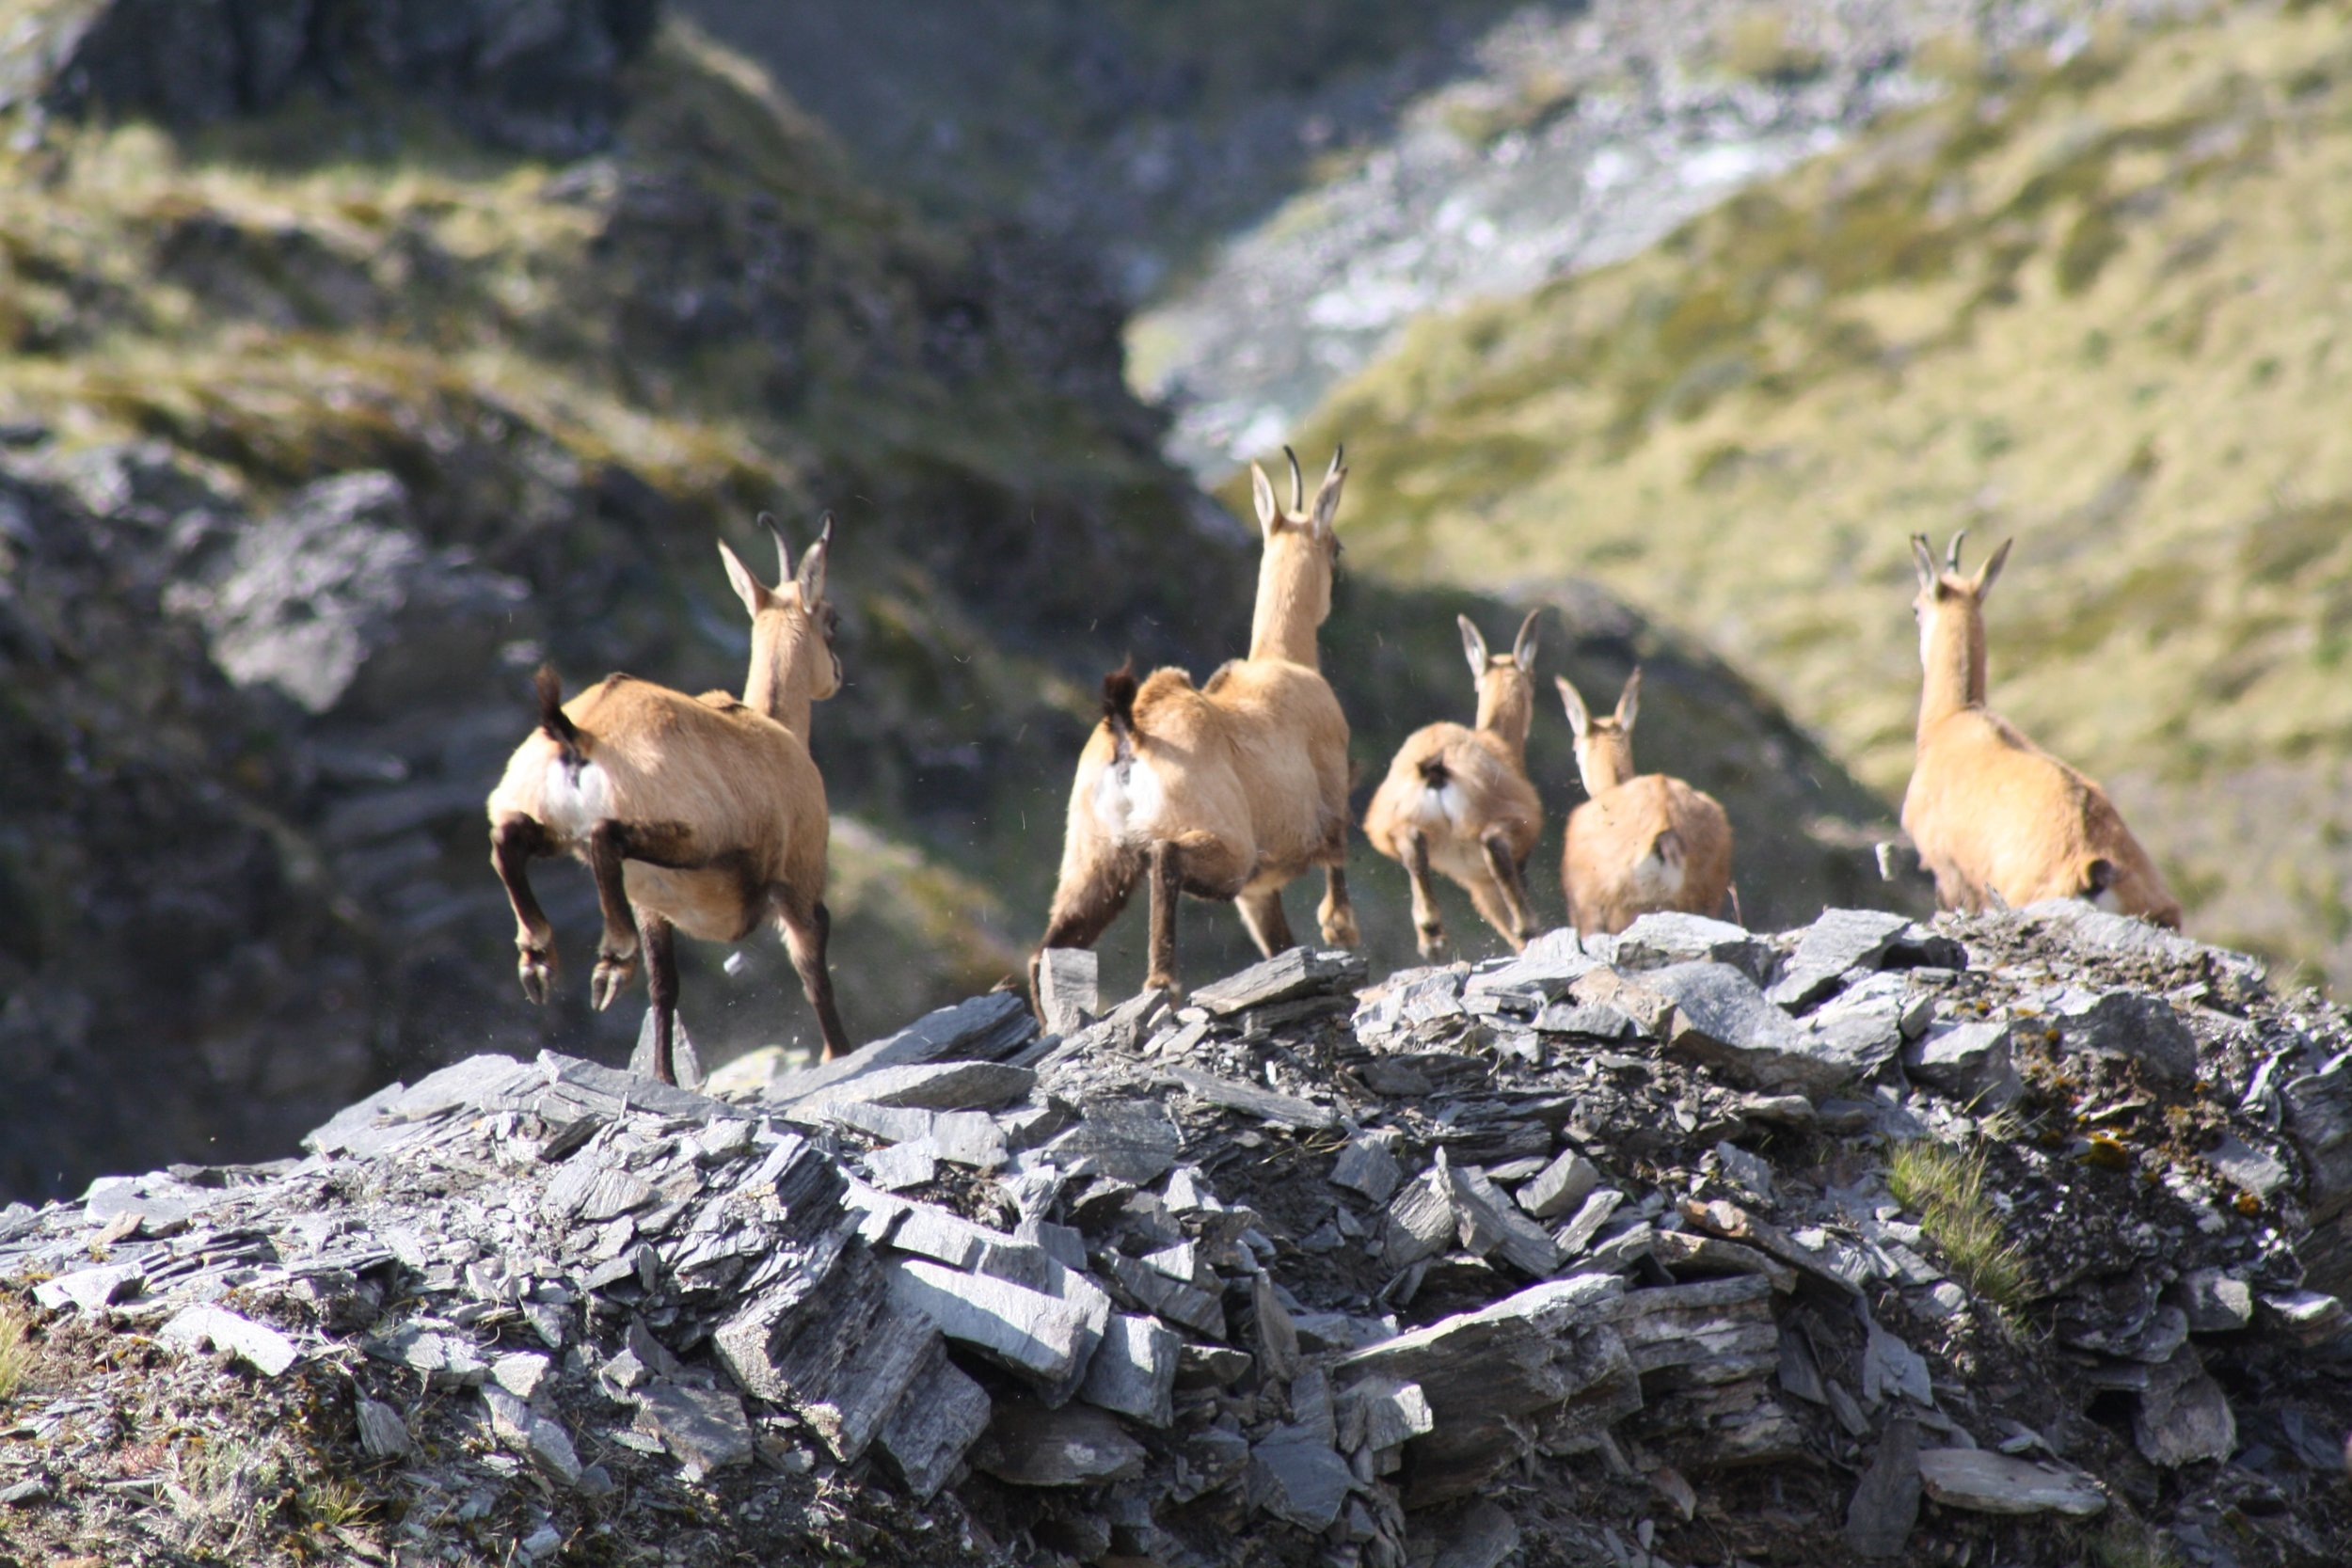 Fleeing chamois, no nuts here! Image @ Hugh Bagley